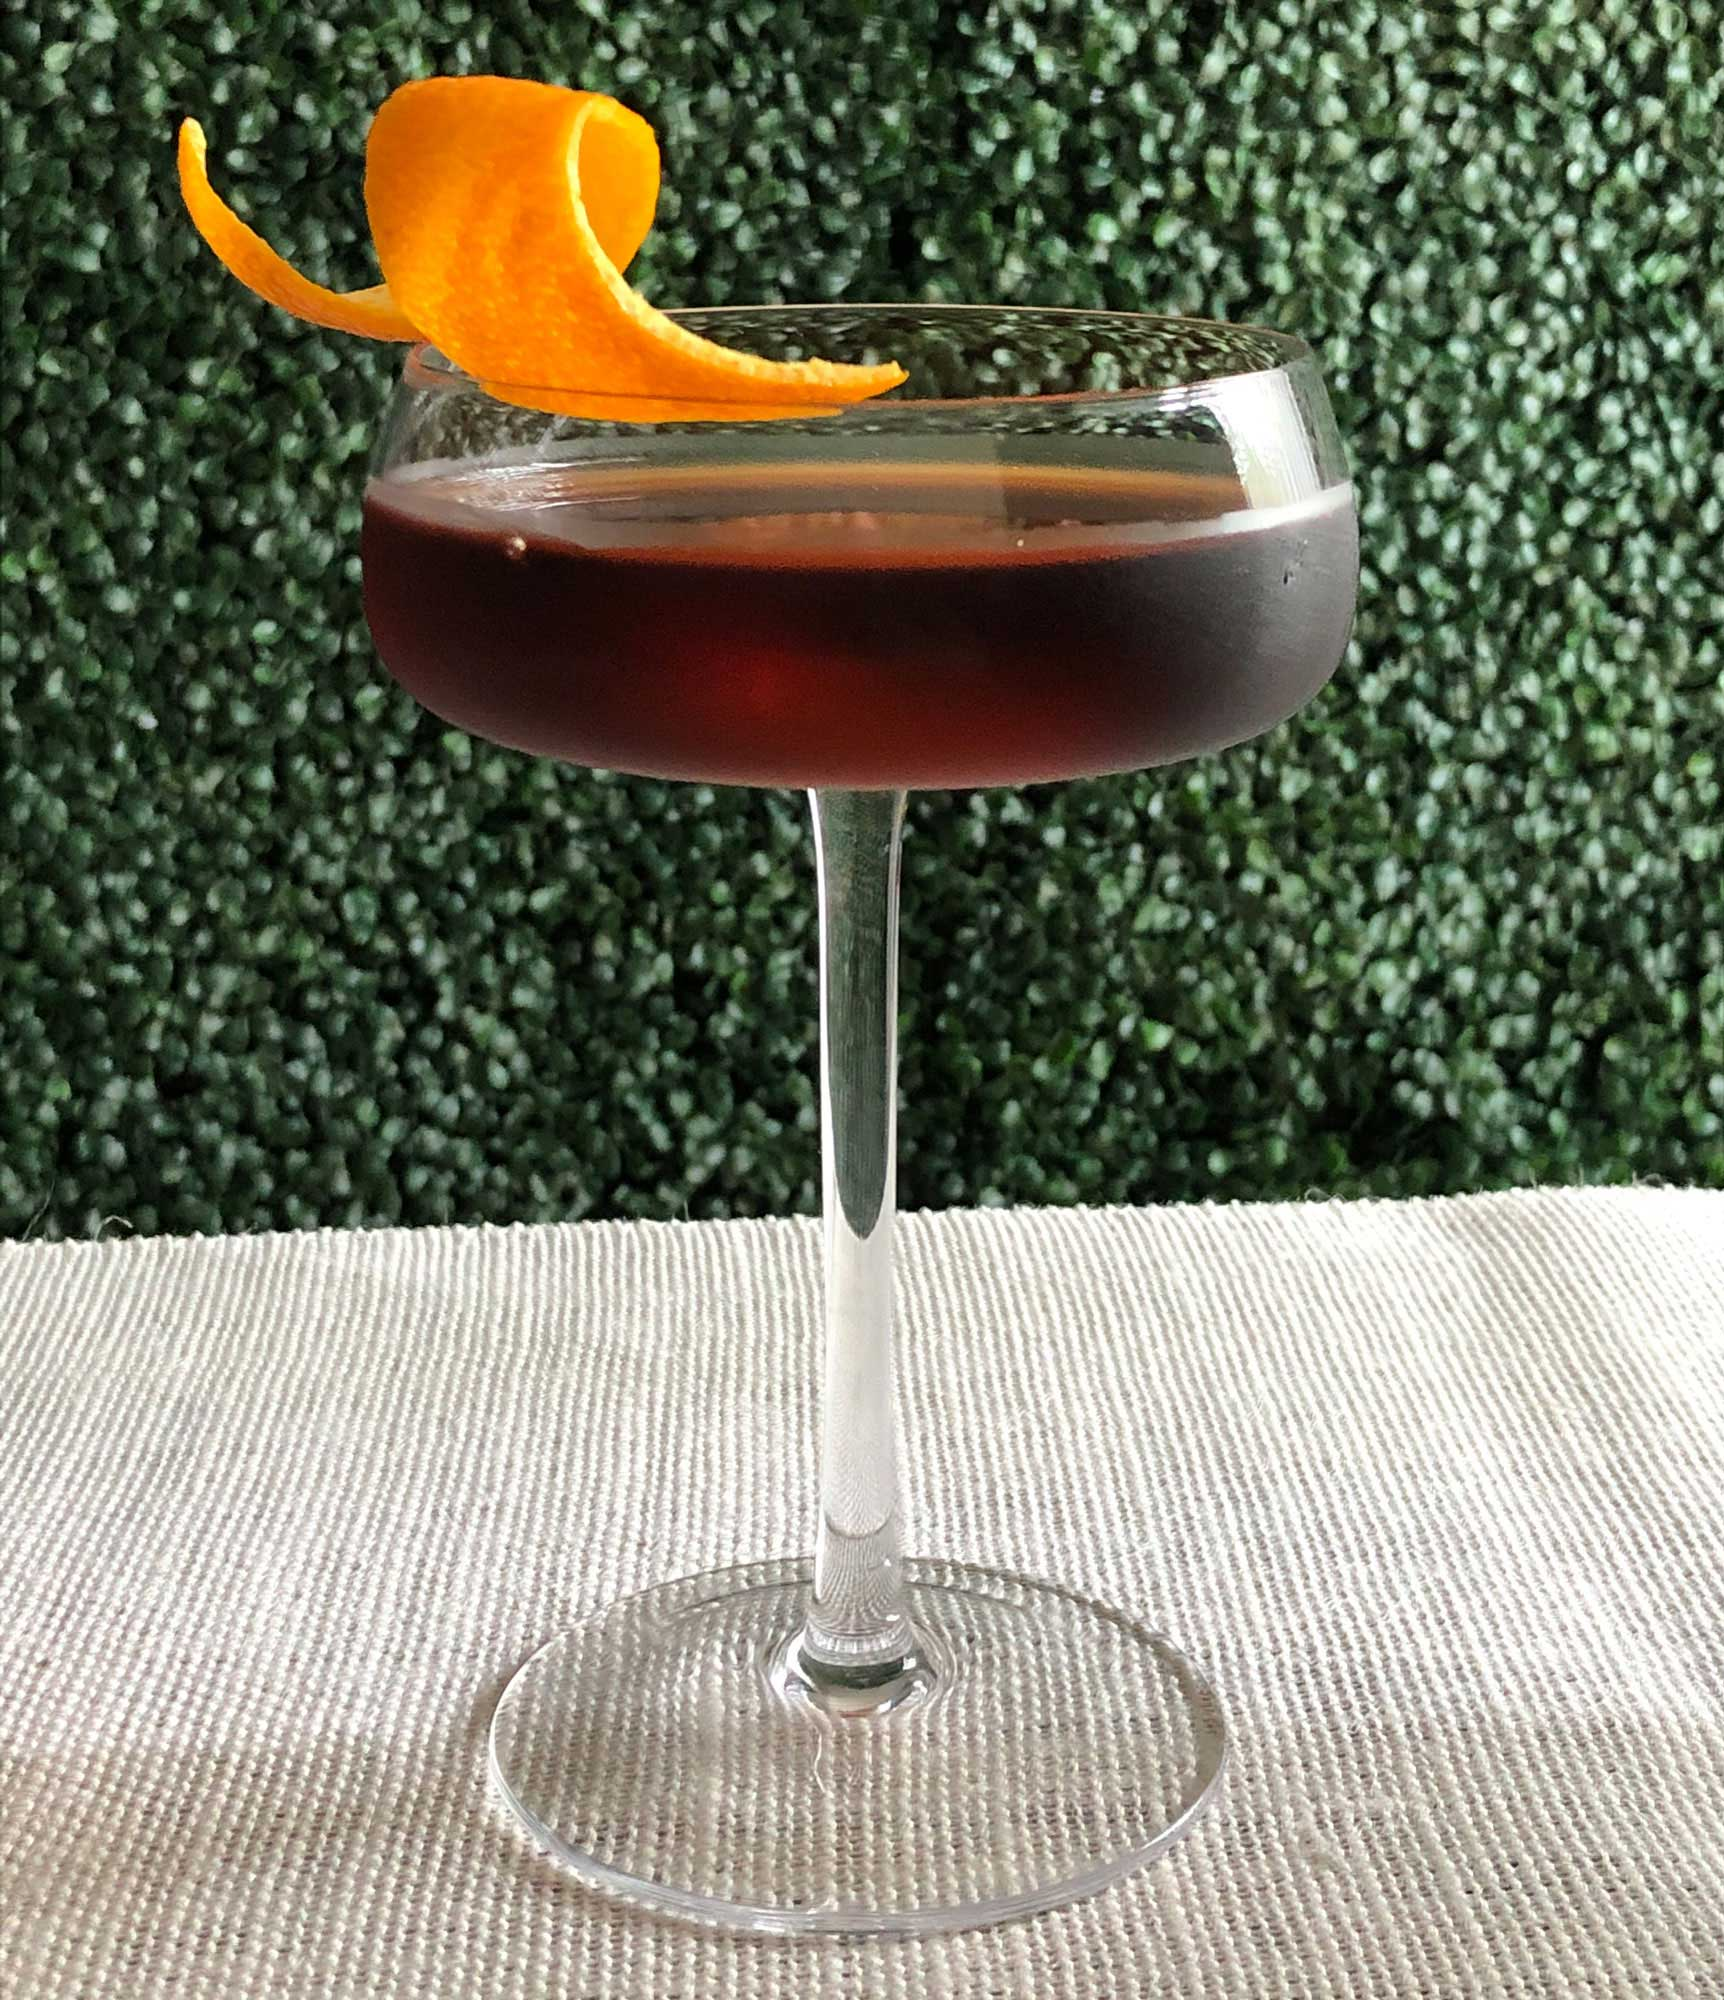 An example of the In Vida Veritas, the mixed drink (cocktail), by Misty Kalkofen, Boston, MA, featuring Del Maguey Mezcal Vida, Zirbenz Stone Pine Liqueur of the Alps, Nux Alpina Walnut Liqueur, Bénédictine, and chocolate bitters; photo by Lee Edwards